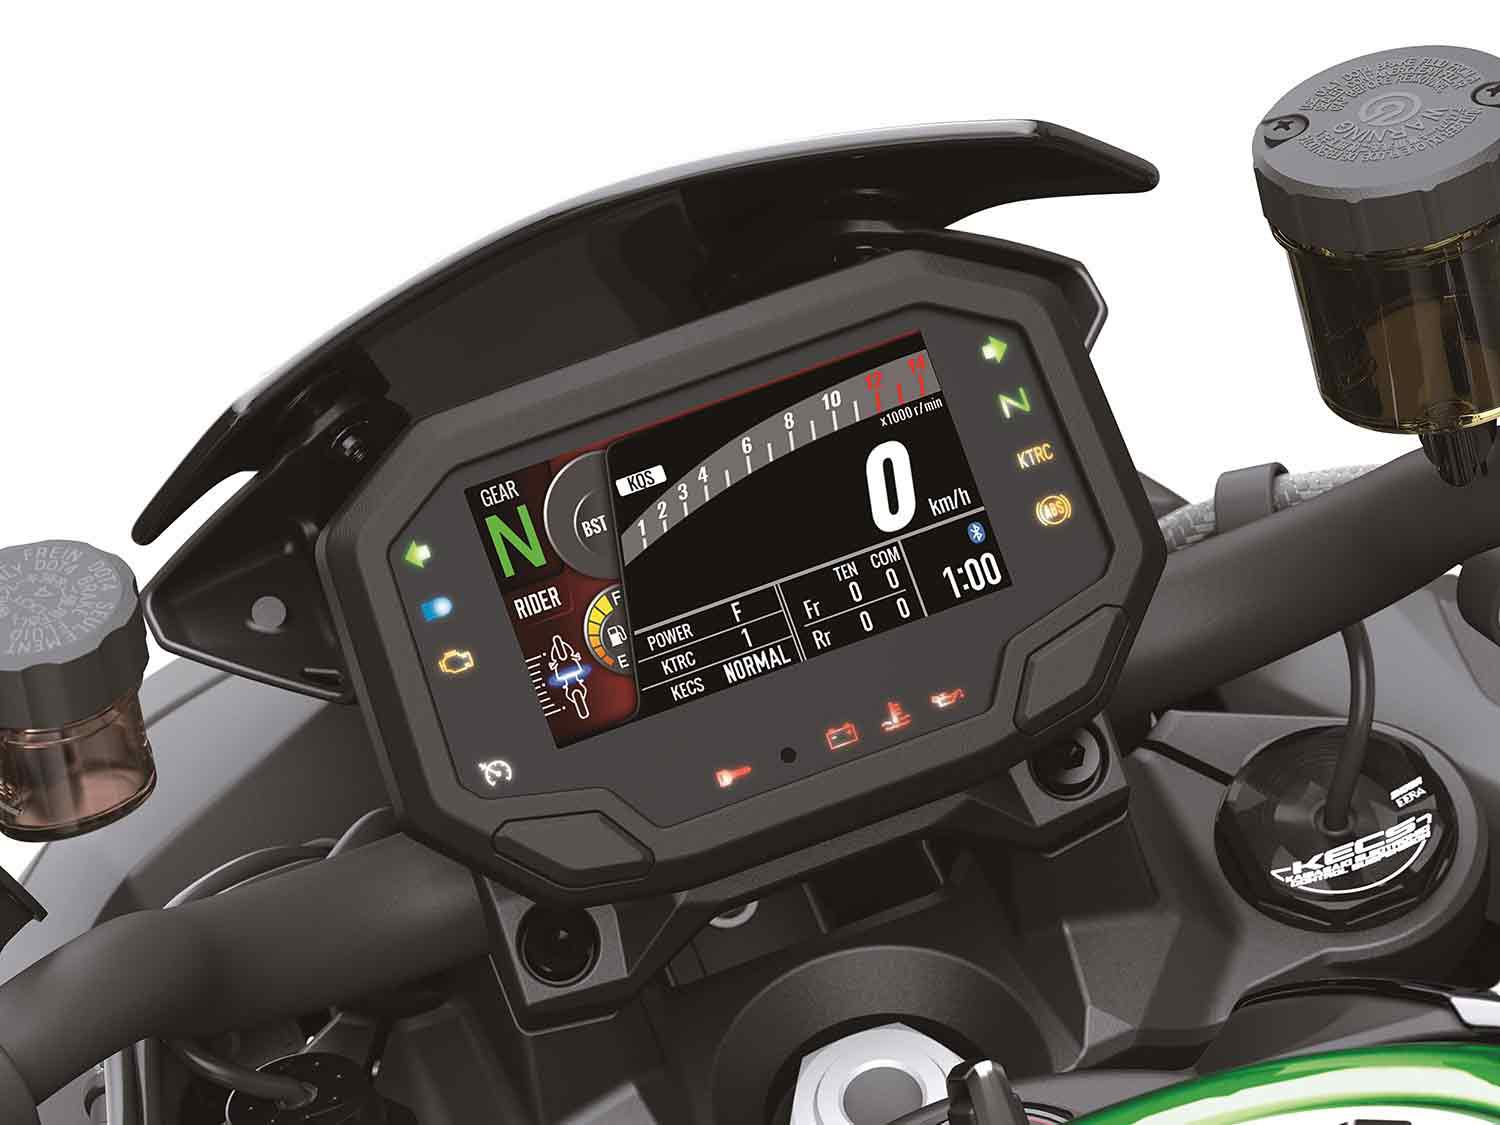 The Z H2 SE has three set rider modes as well as the ability to customize electronics settings to your liking.